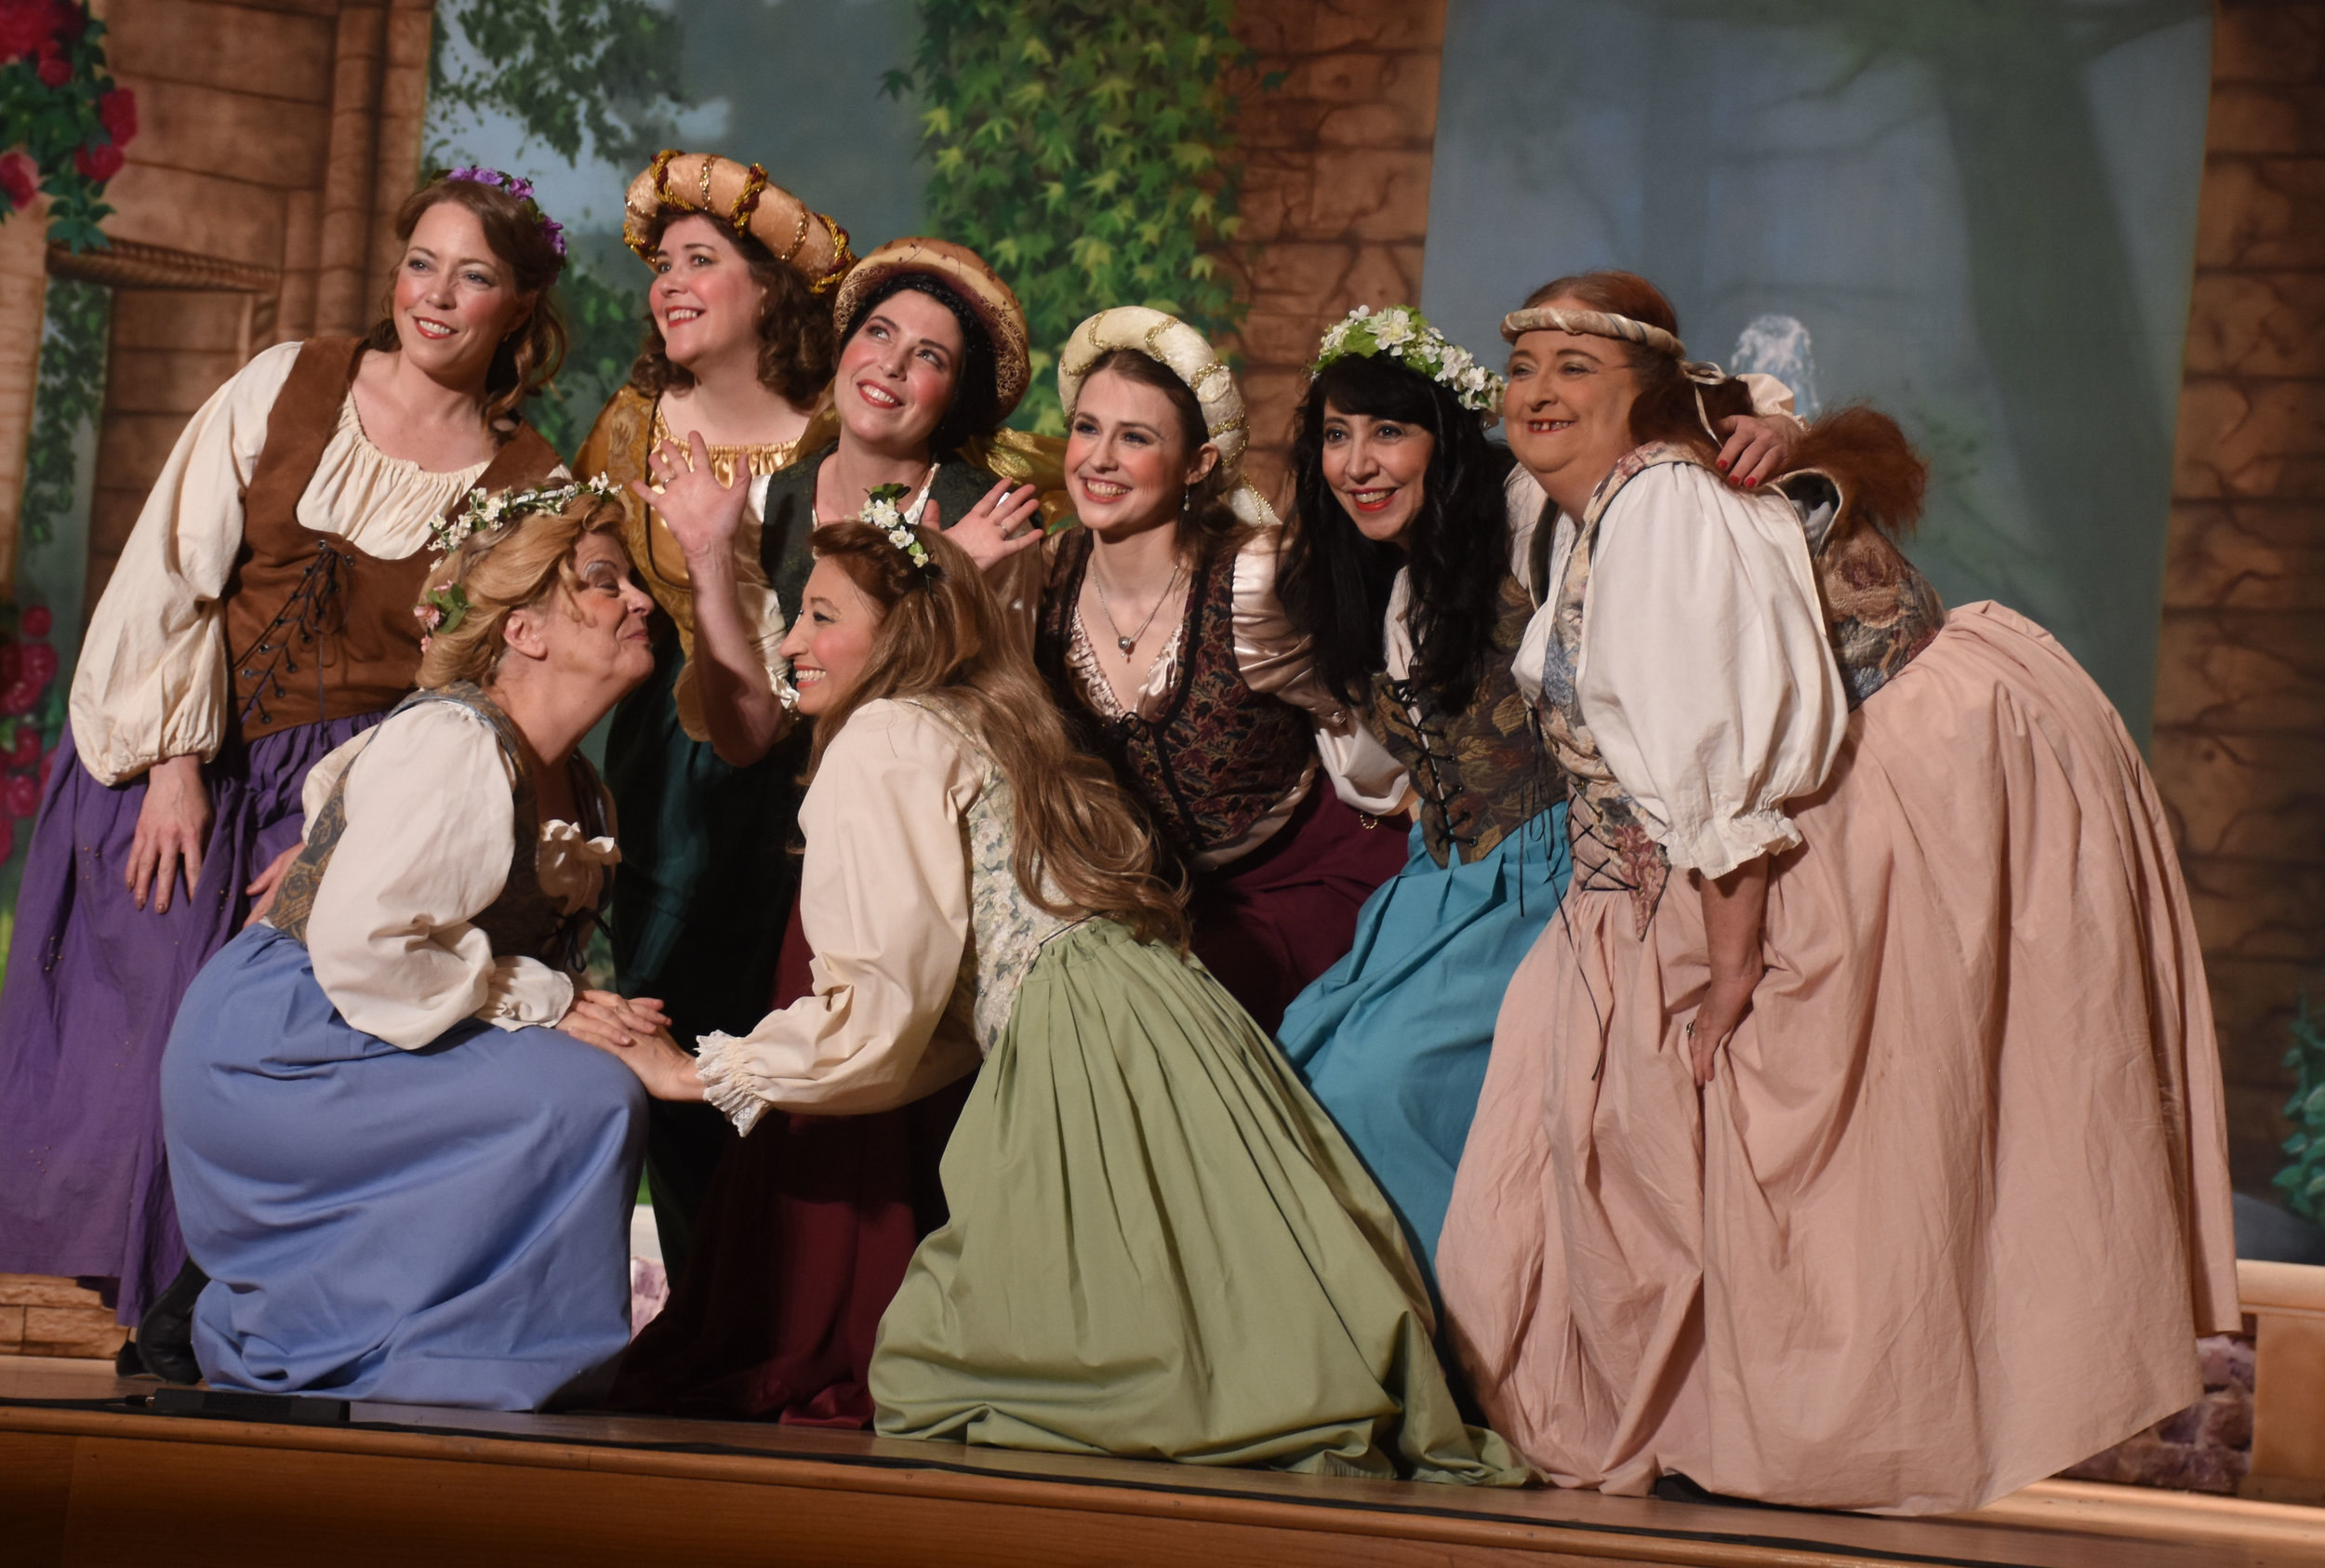 Wendy Falconer, Brett Kroeger, and Jennifer Wallace as the three little maids with other maiden attendants